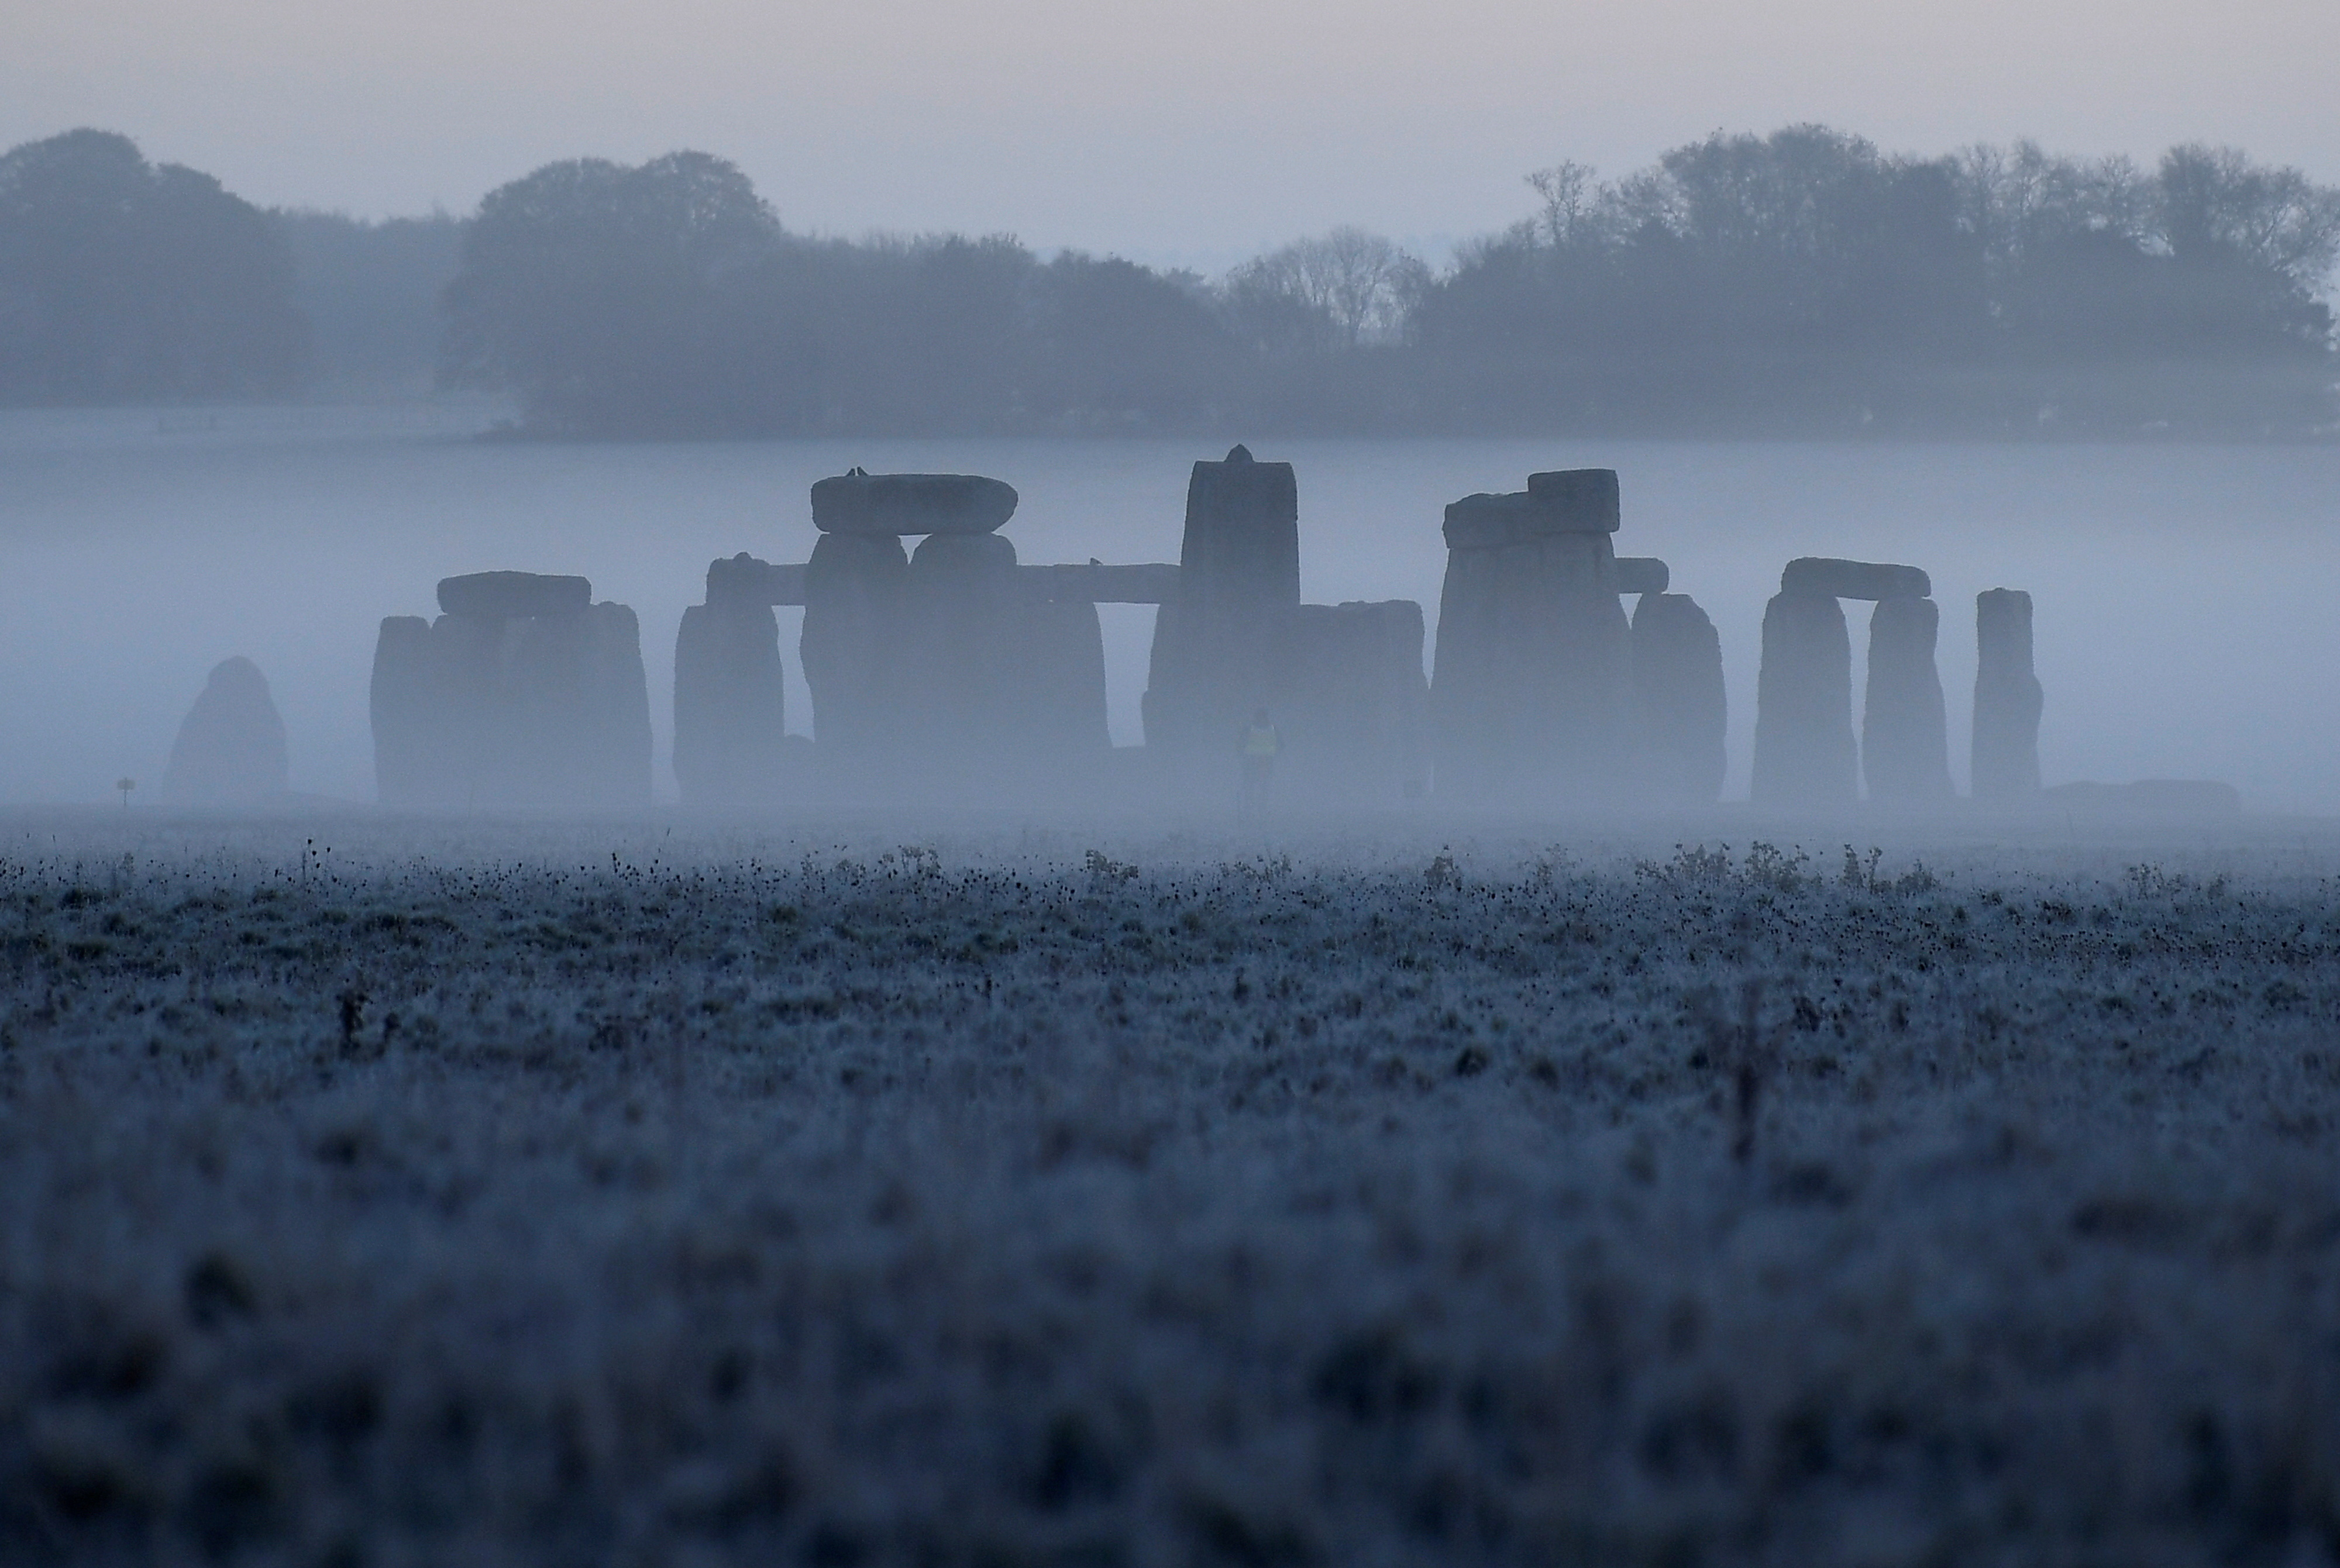 Stonehenge ancient stone circle is seen at dawn, near Amesbury, Wiltshire, Britain, November 4, 2020. REUTERS/Toby Melville/File Photo